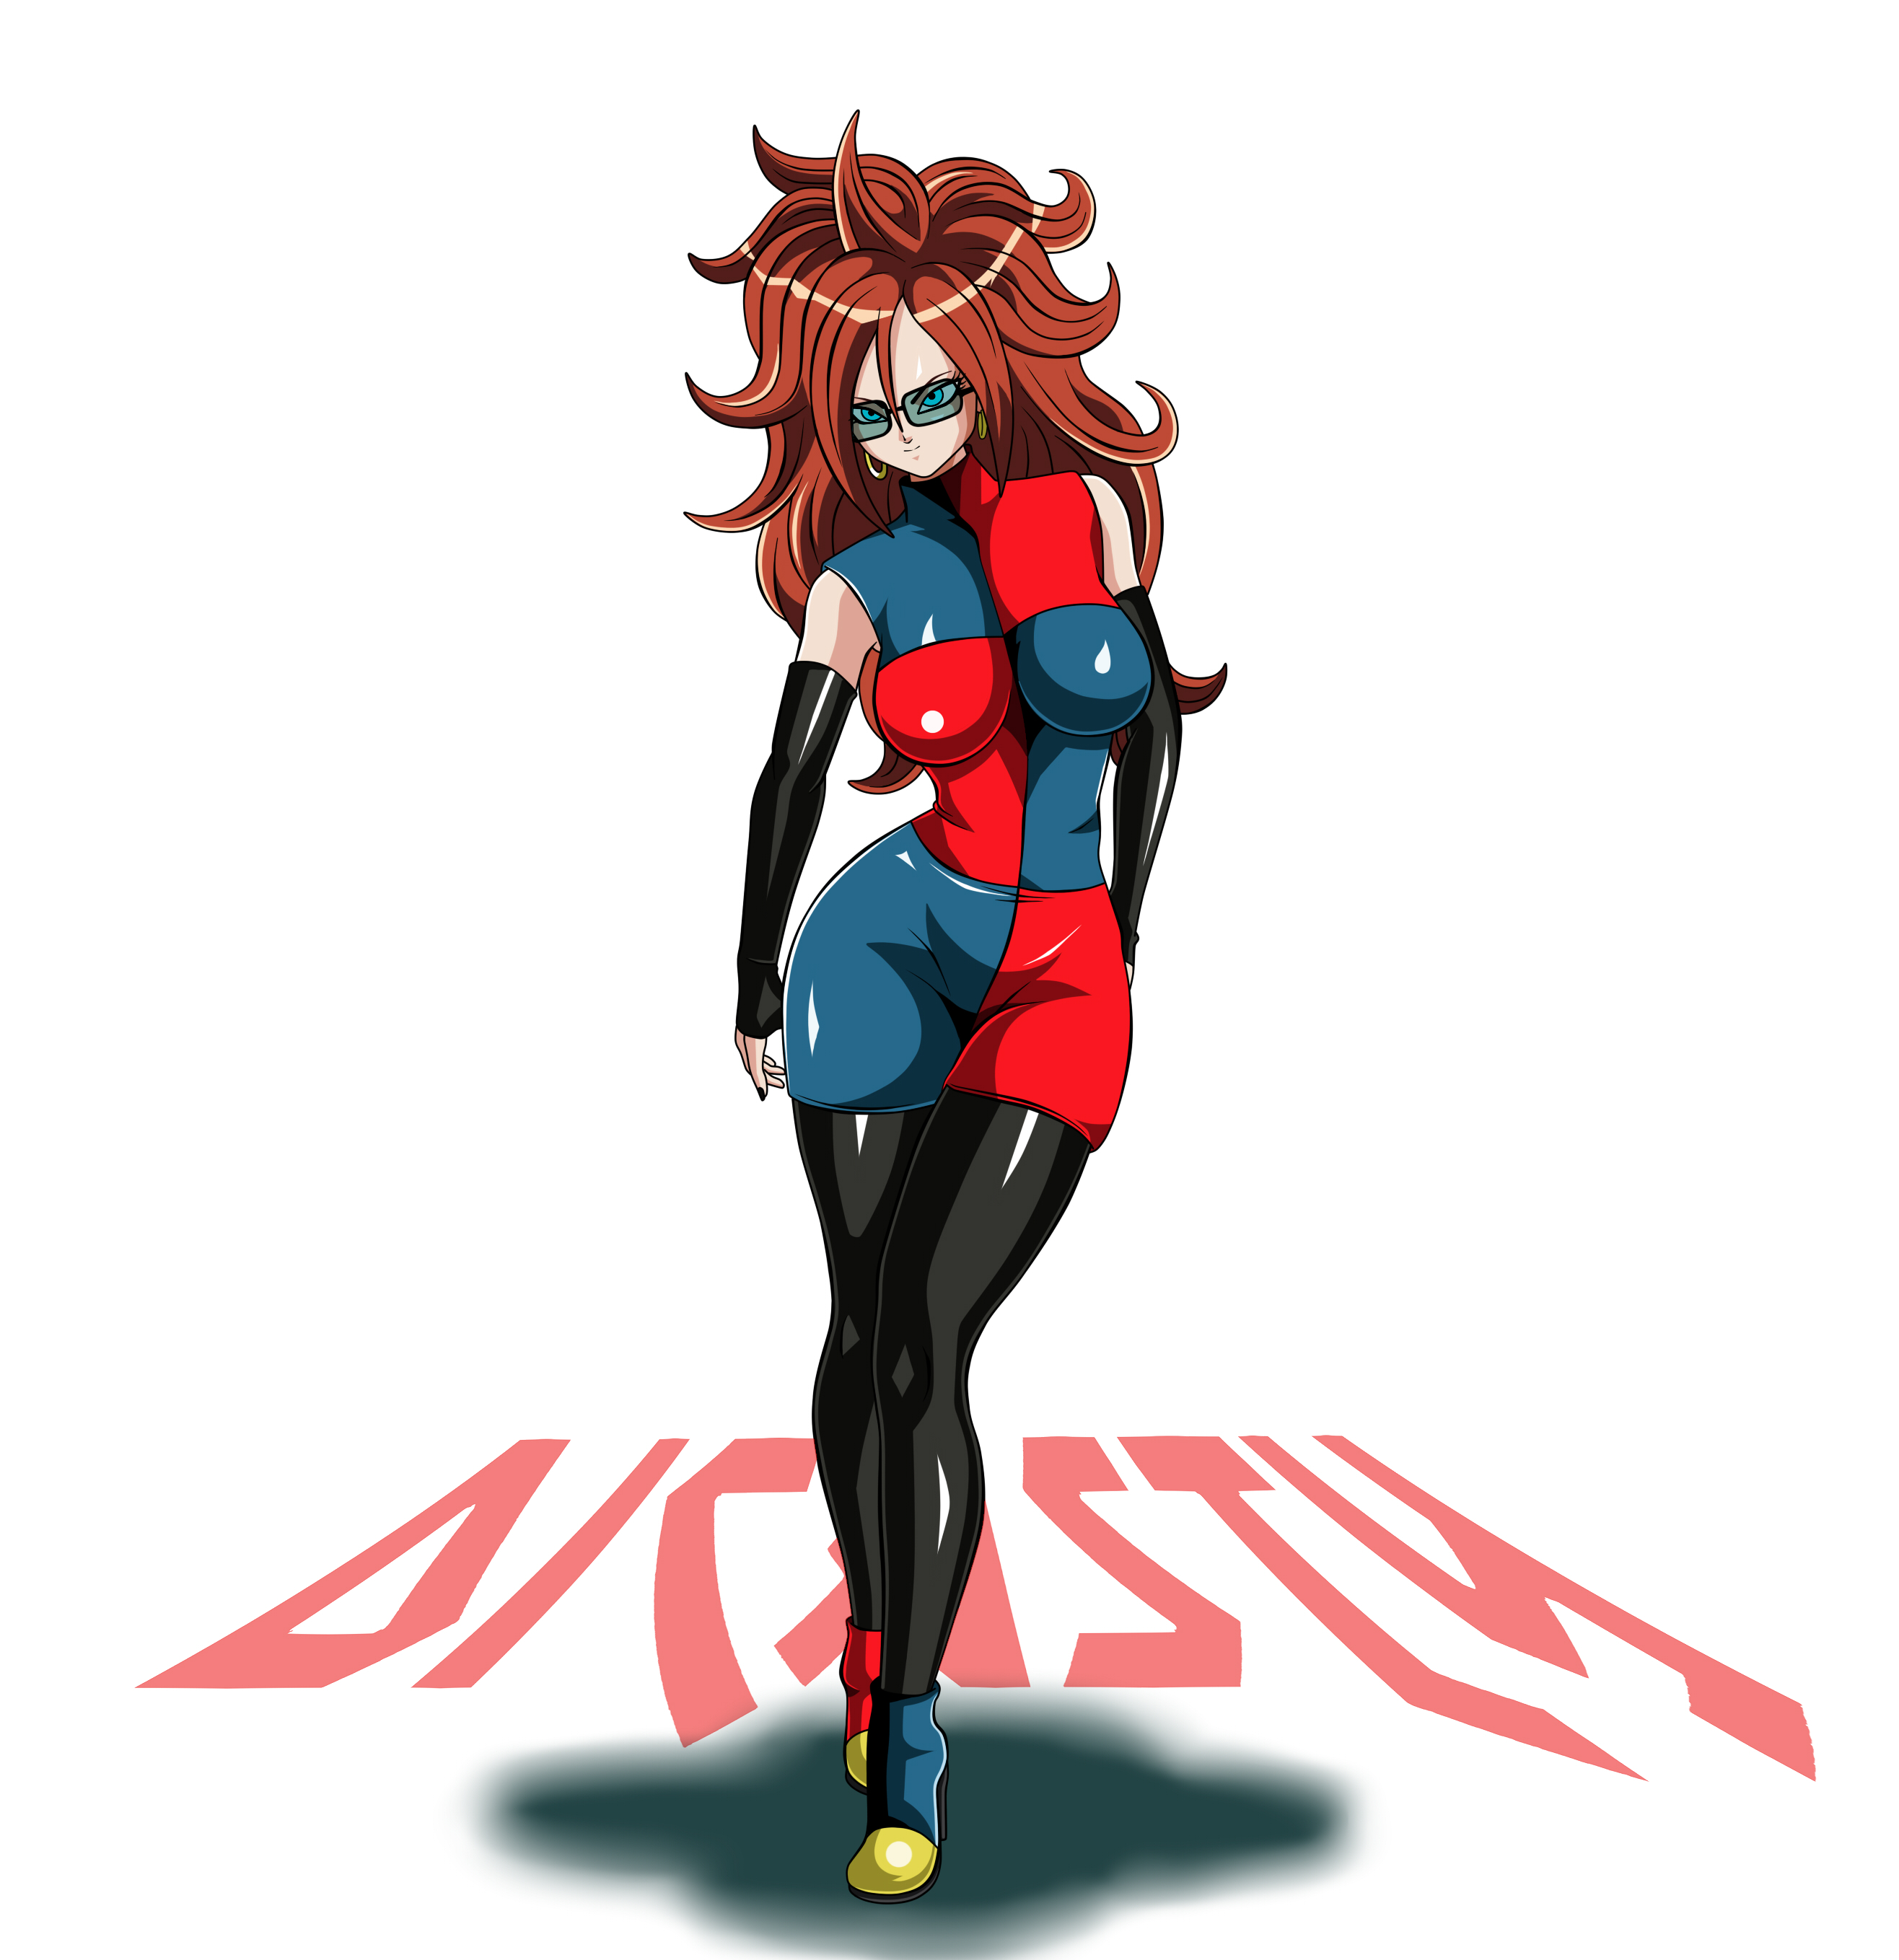 Dragon Ball Android 21: Android 21 (dragon Ball And Dragon Ball Fighterz) Drawn By